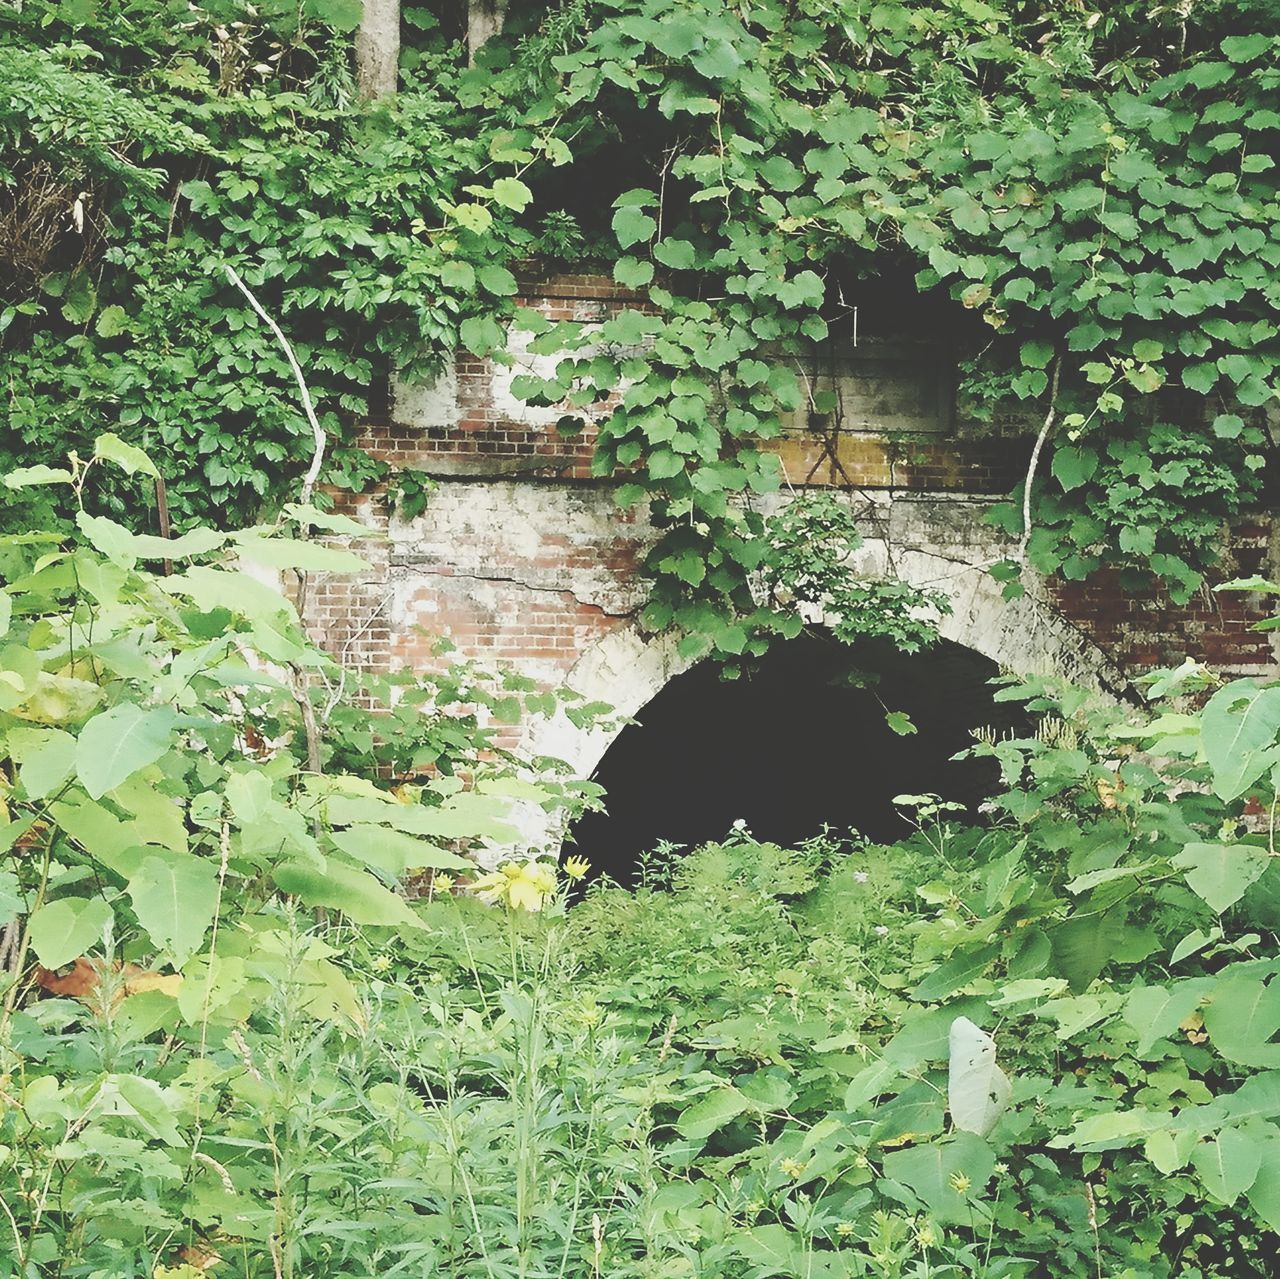 plant, growth, leaf, green color, ivy, creeper, outdoors, architecture, day, built structure, nature, creeper plant, no people, tree